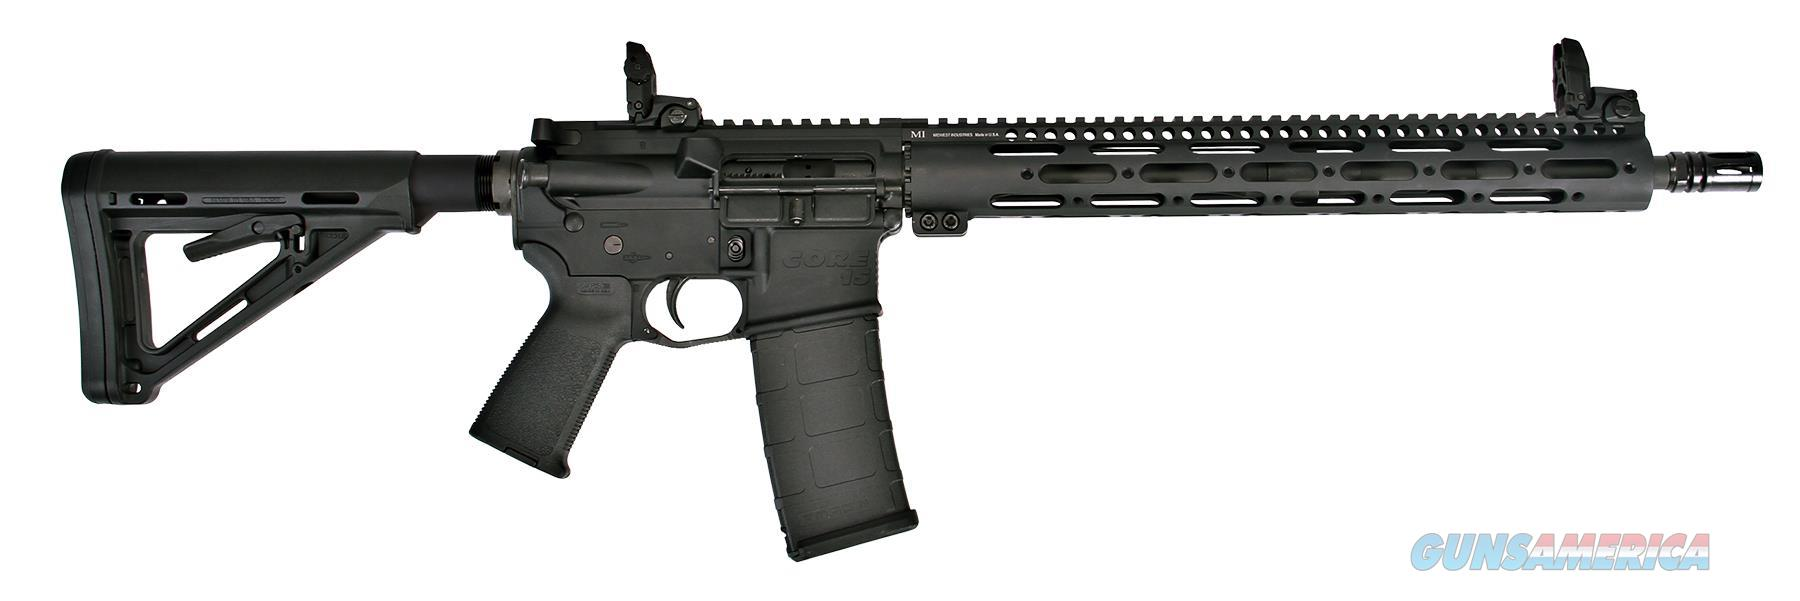 "Core 15  10661 Tac Iii M4 Sa 223/5.56 16"" 30+1 Blk 6-Pos Collapsible Stk Black 10611  Guns > Rifles > C Misc Rifles"